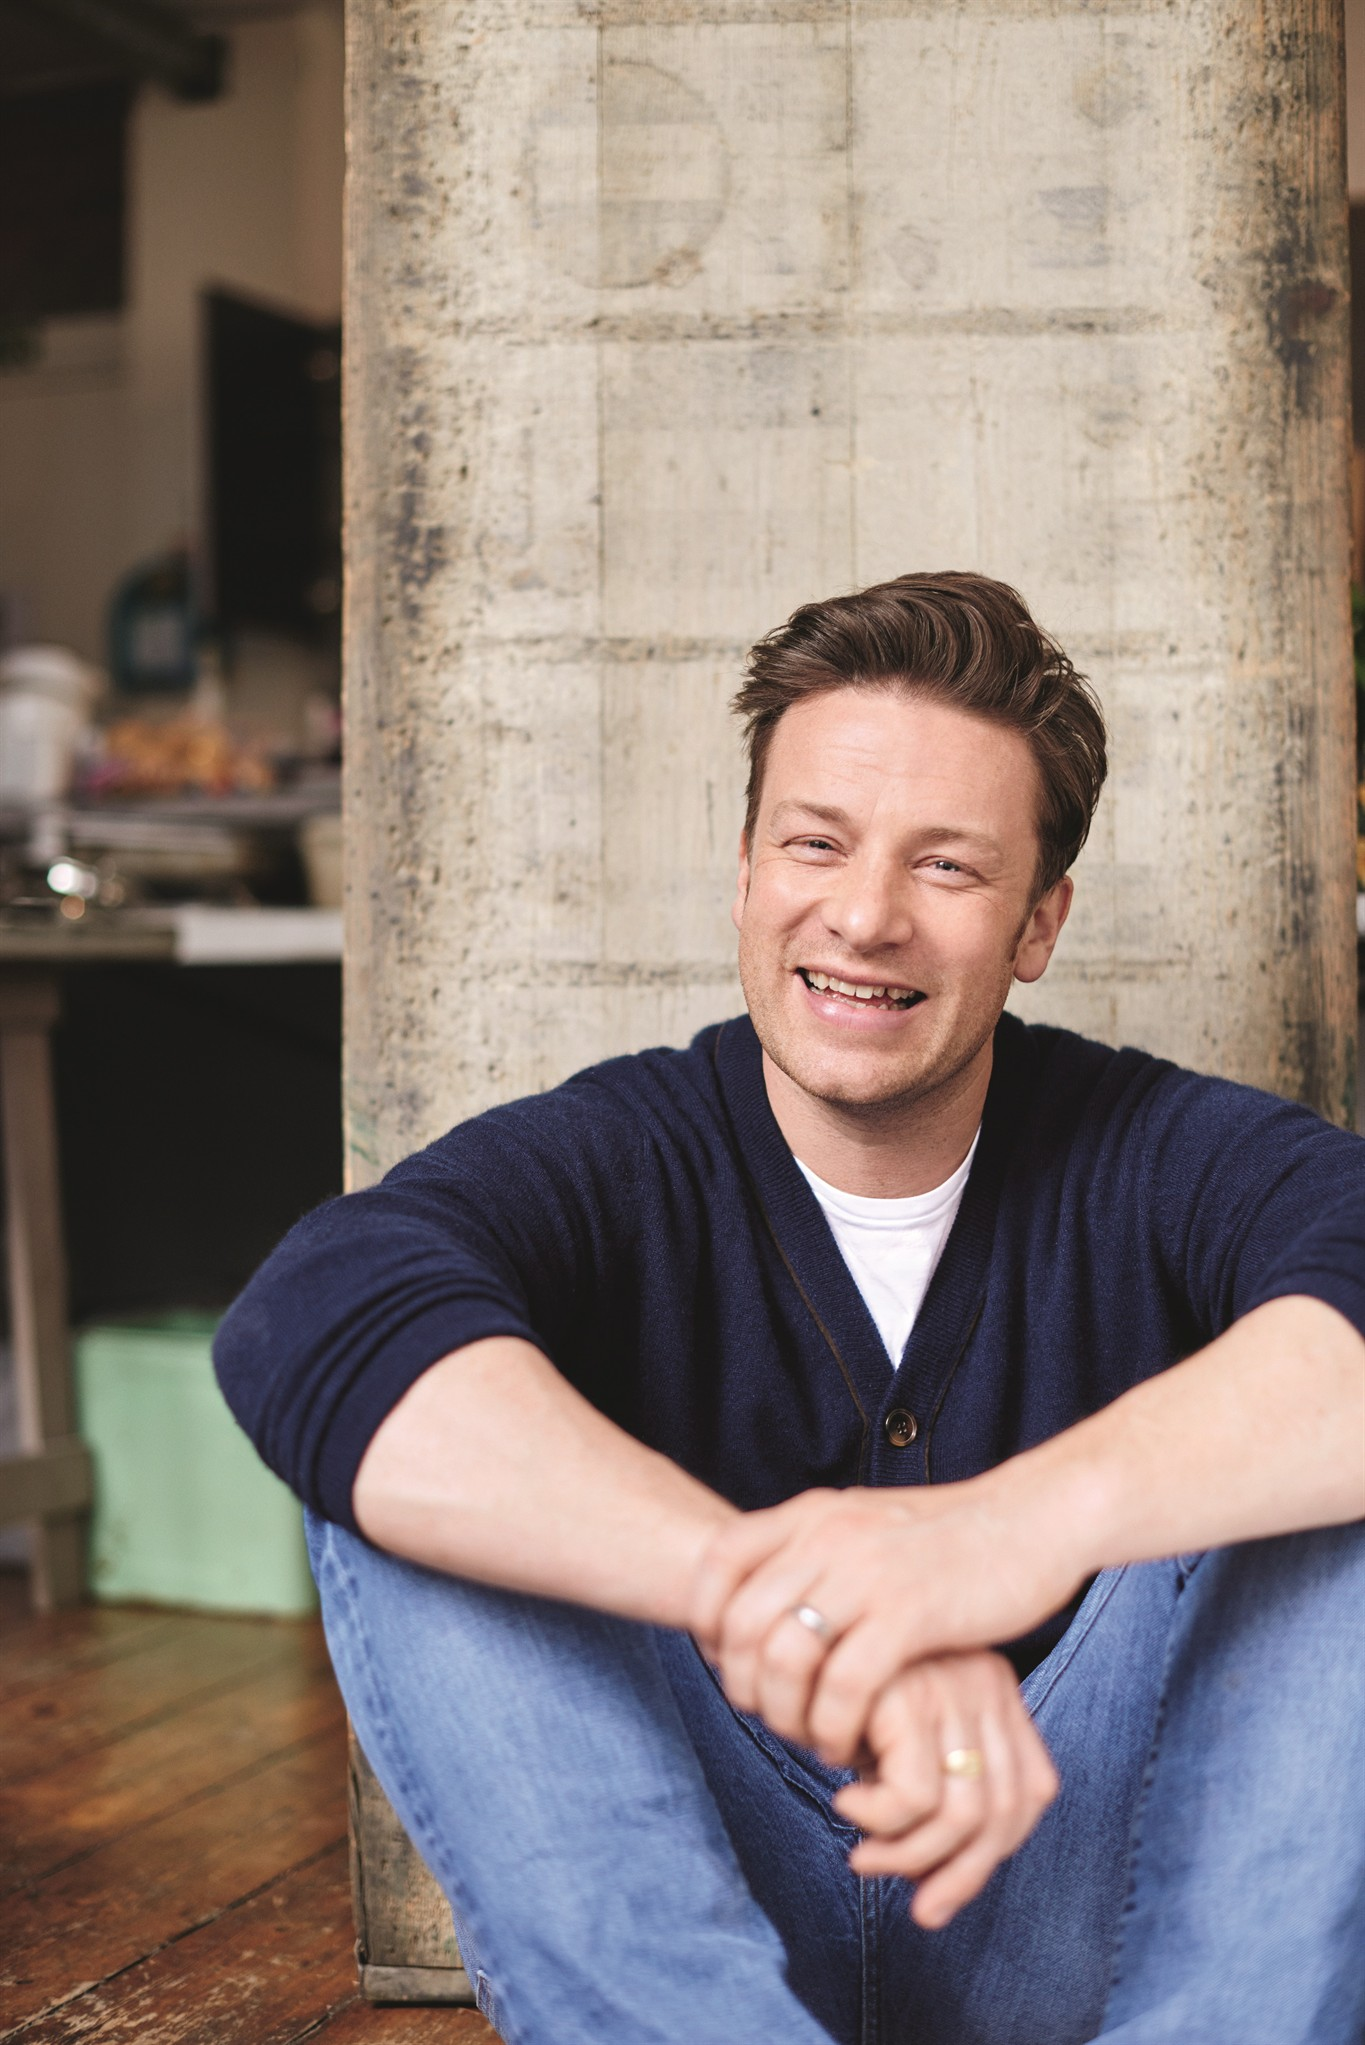 jamie oliver the latest celebrity chef to launch. Black Bedroom Furniture Sets. Home Design Ideas